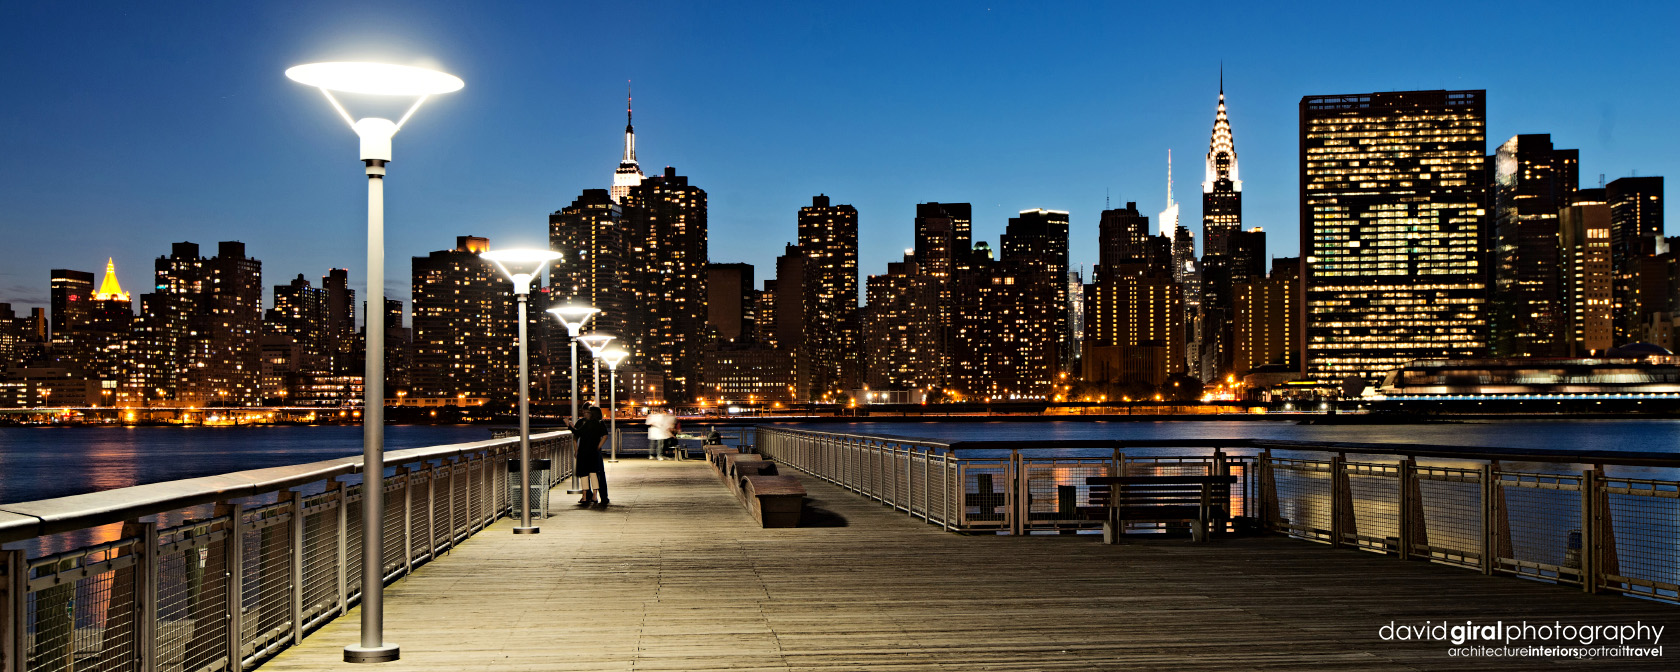 05-dgiral-gantry-park-long-island-queens-nyc-skyline-night-panorama